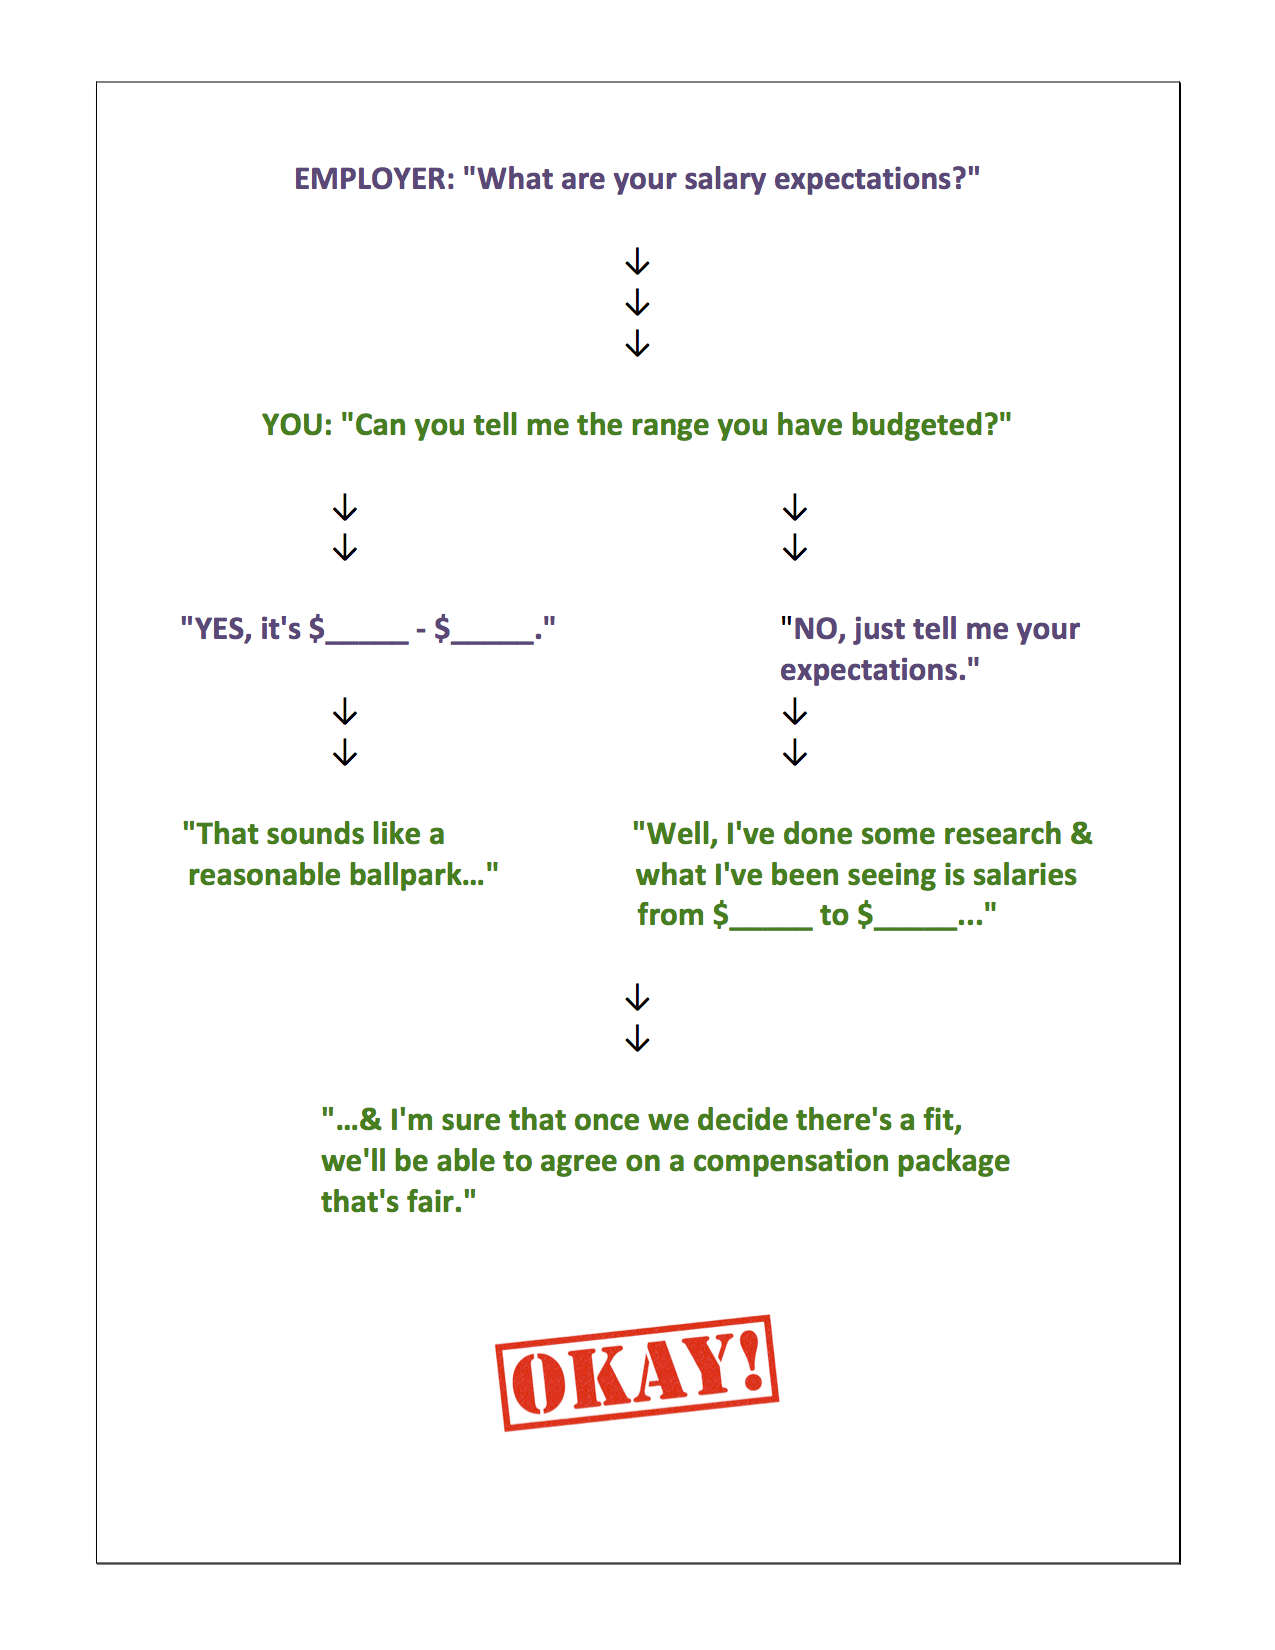 giving the wrong answer to interview questions about your desired salary can cost you a lot of money or a job offer this infographic shows you how to - What Are Your Expectations For The Job What Is Your Expected Salary